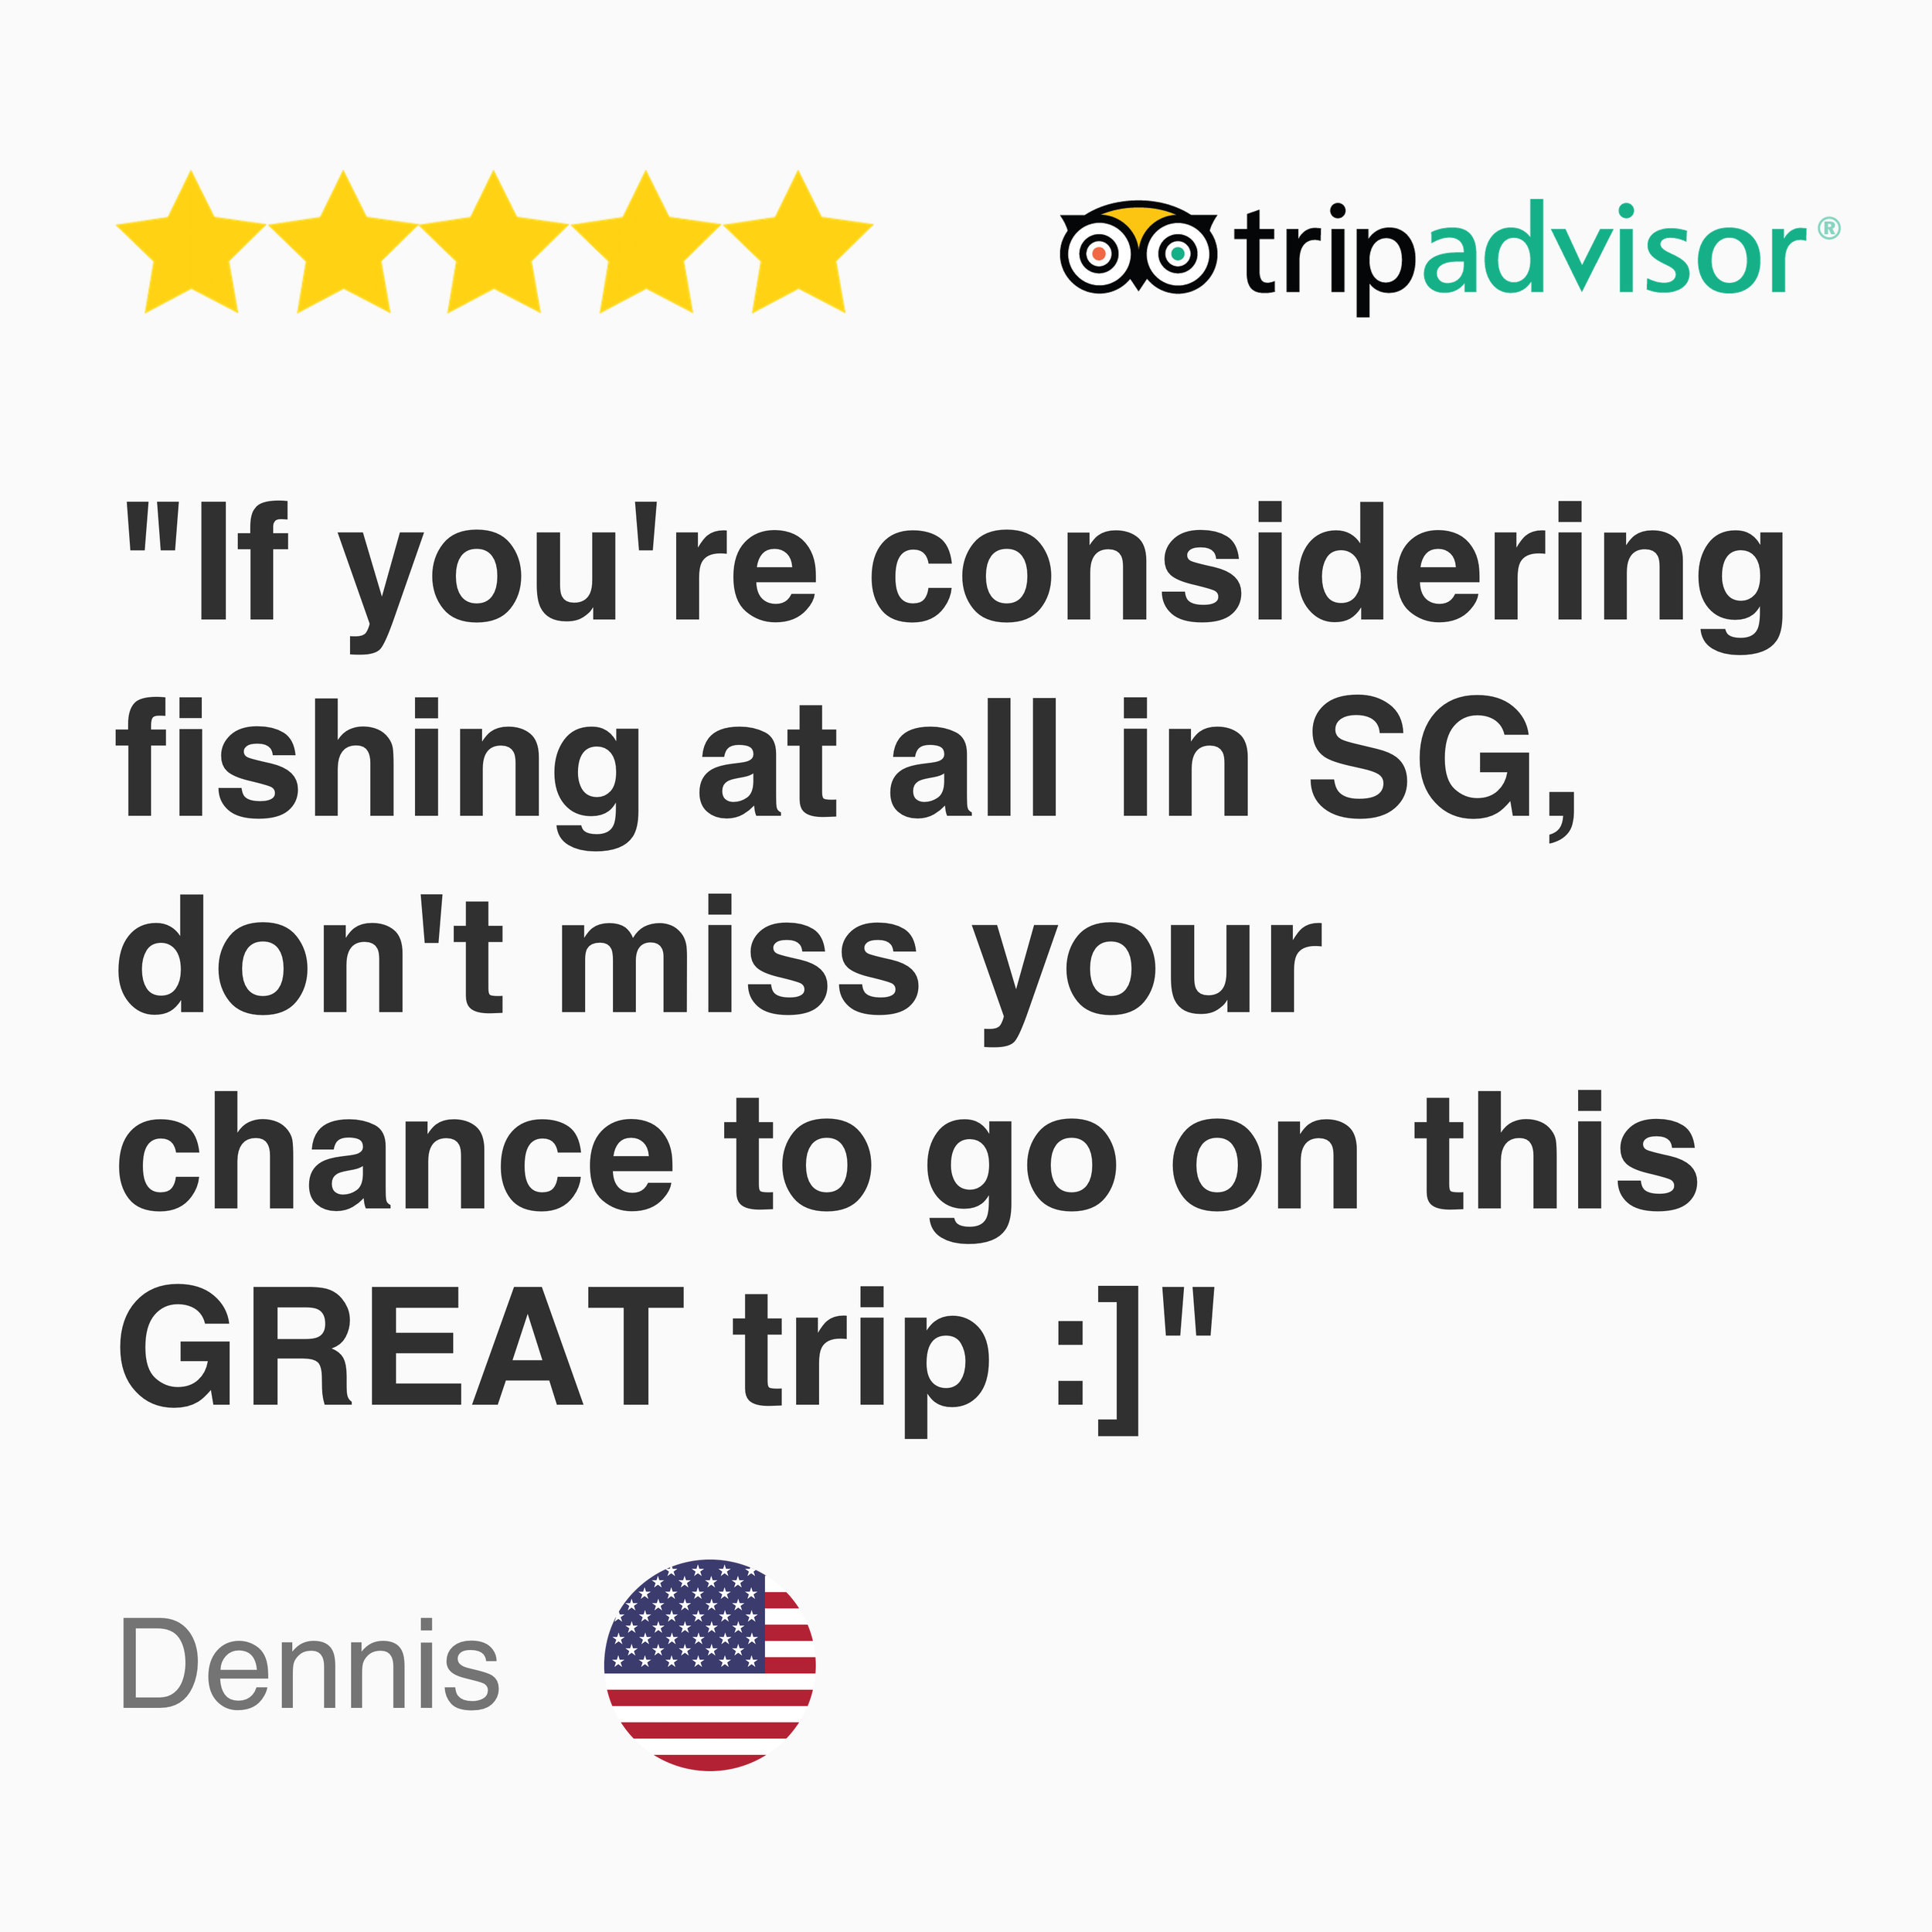 5 star tripadvisor Review for Kayak fishing Singapore tour